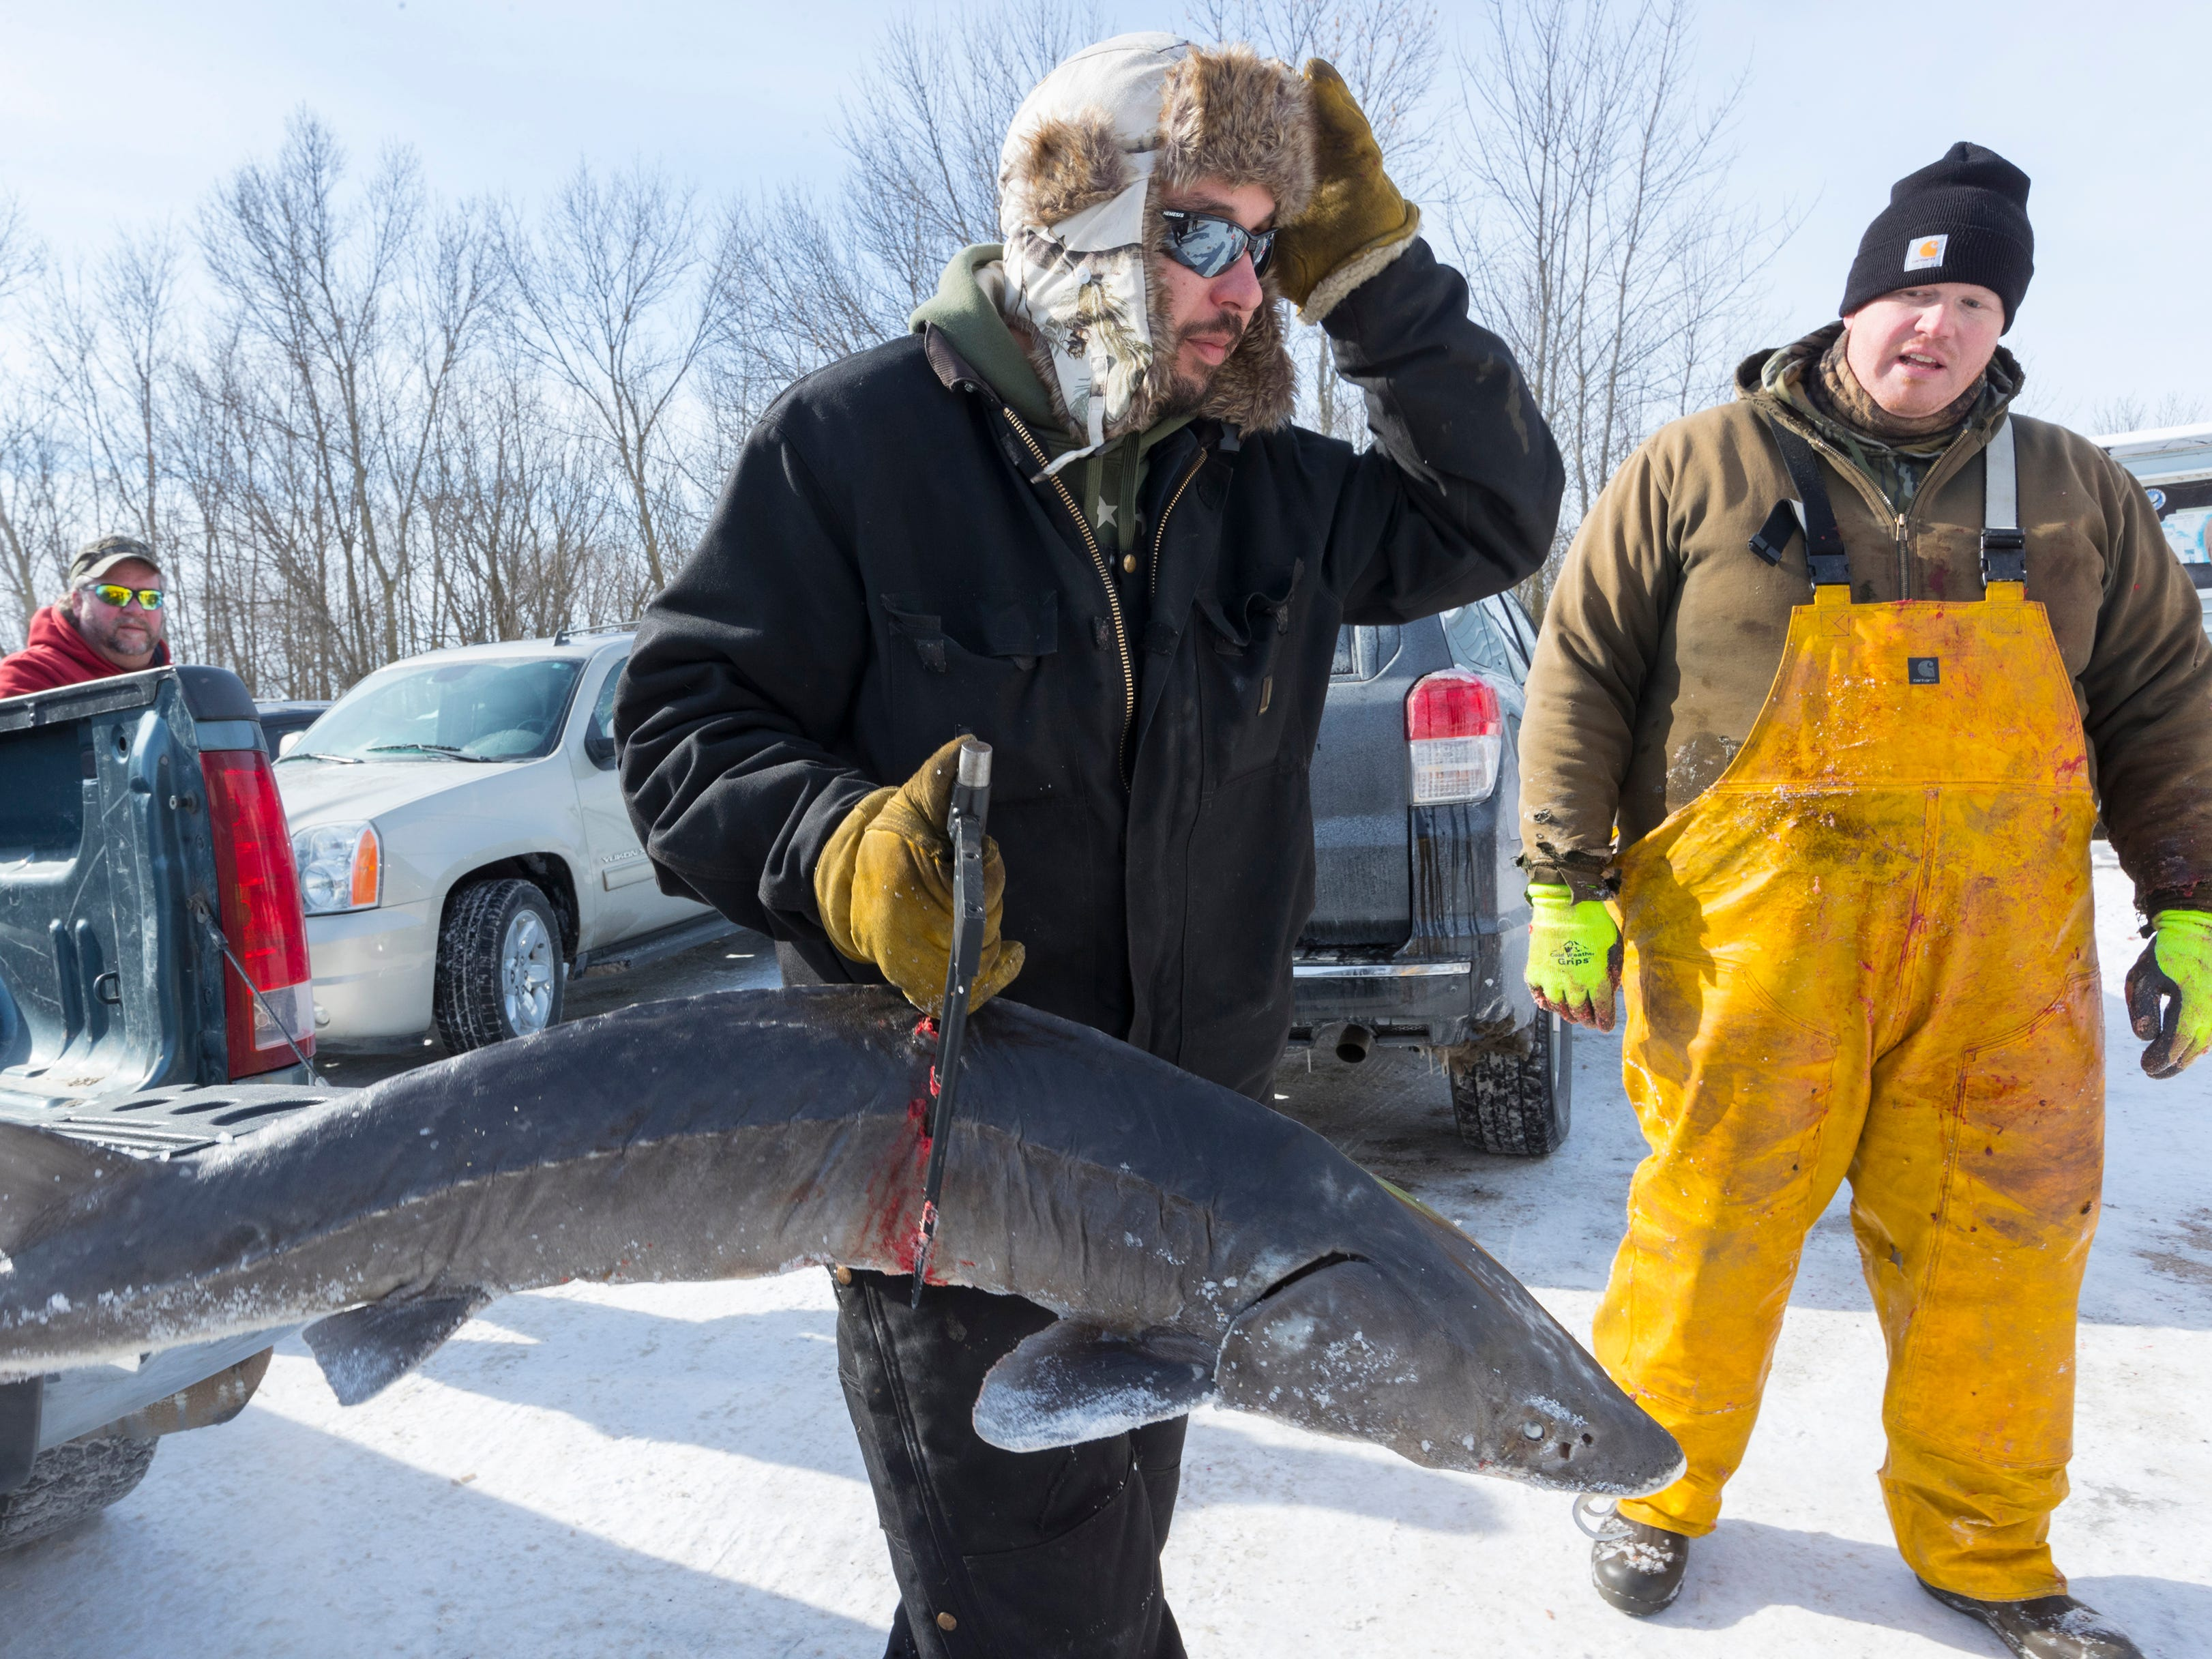 Beau Doemel carries his sturgeon to be registered during the opening day of sturgeon spearing Saturday at Critter's in Winneconne, Wis.